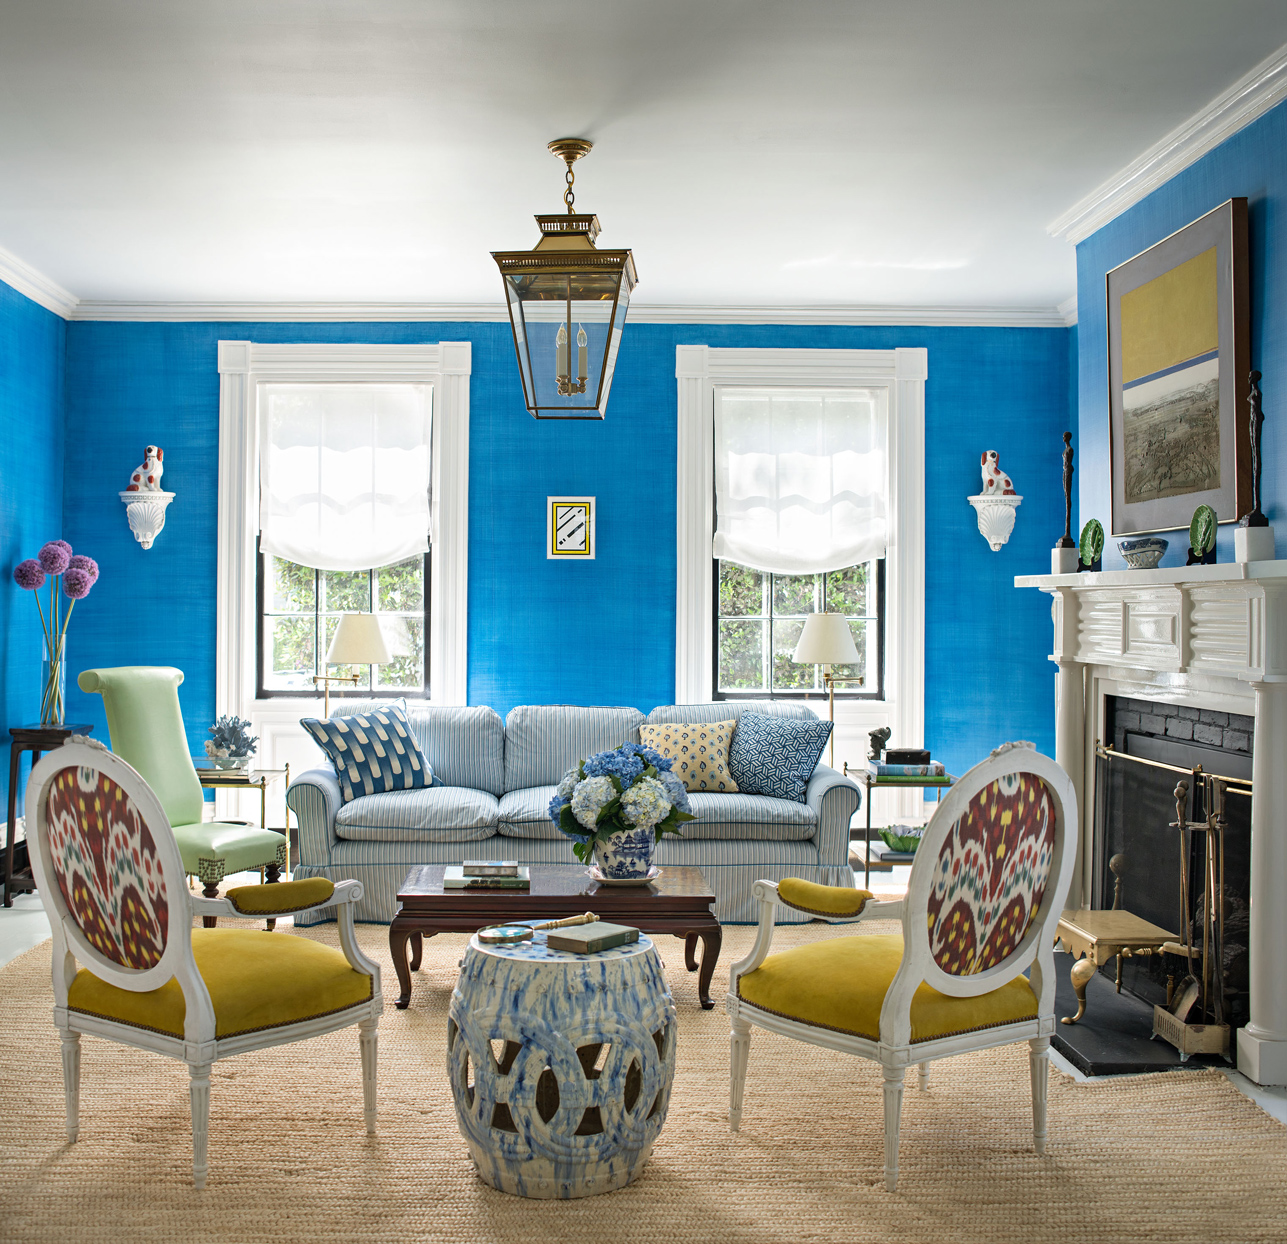 living room with blue walls and yellow chairs